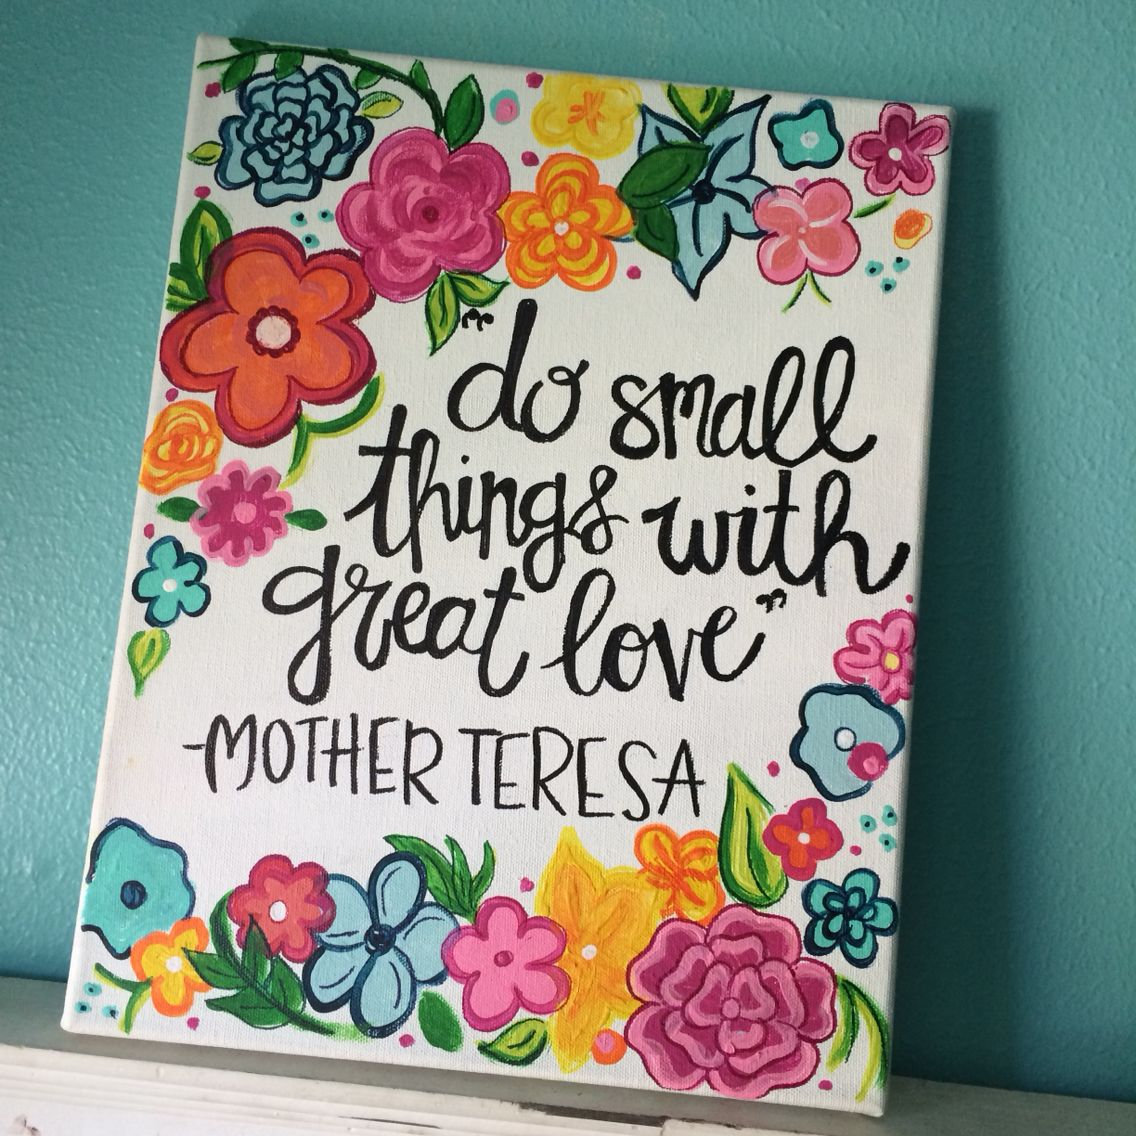 Do Small Things With Great Love Mother Teresa Quote Etsy Chiomegacrafty Check Out My New Lots Of Cute Canvas Paintings